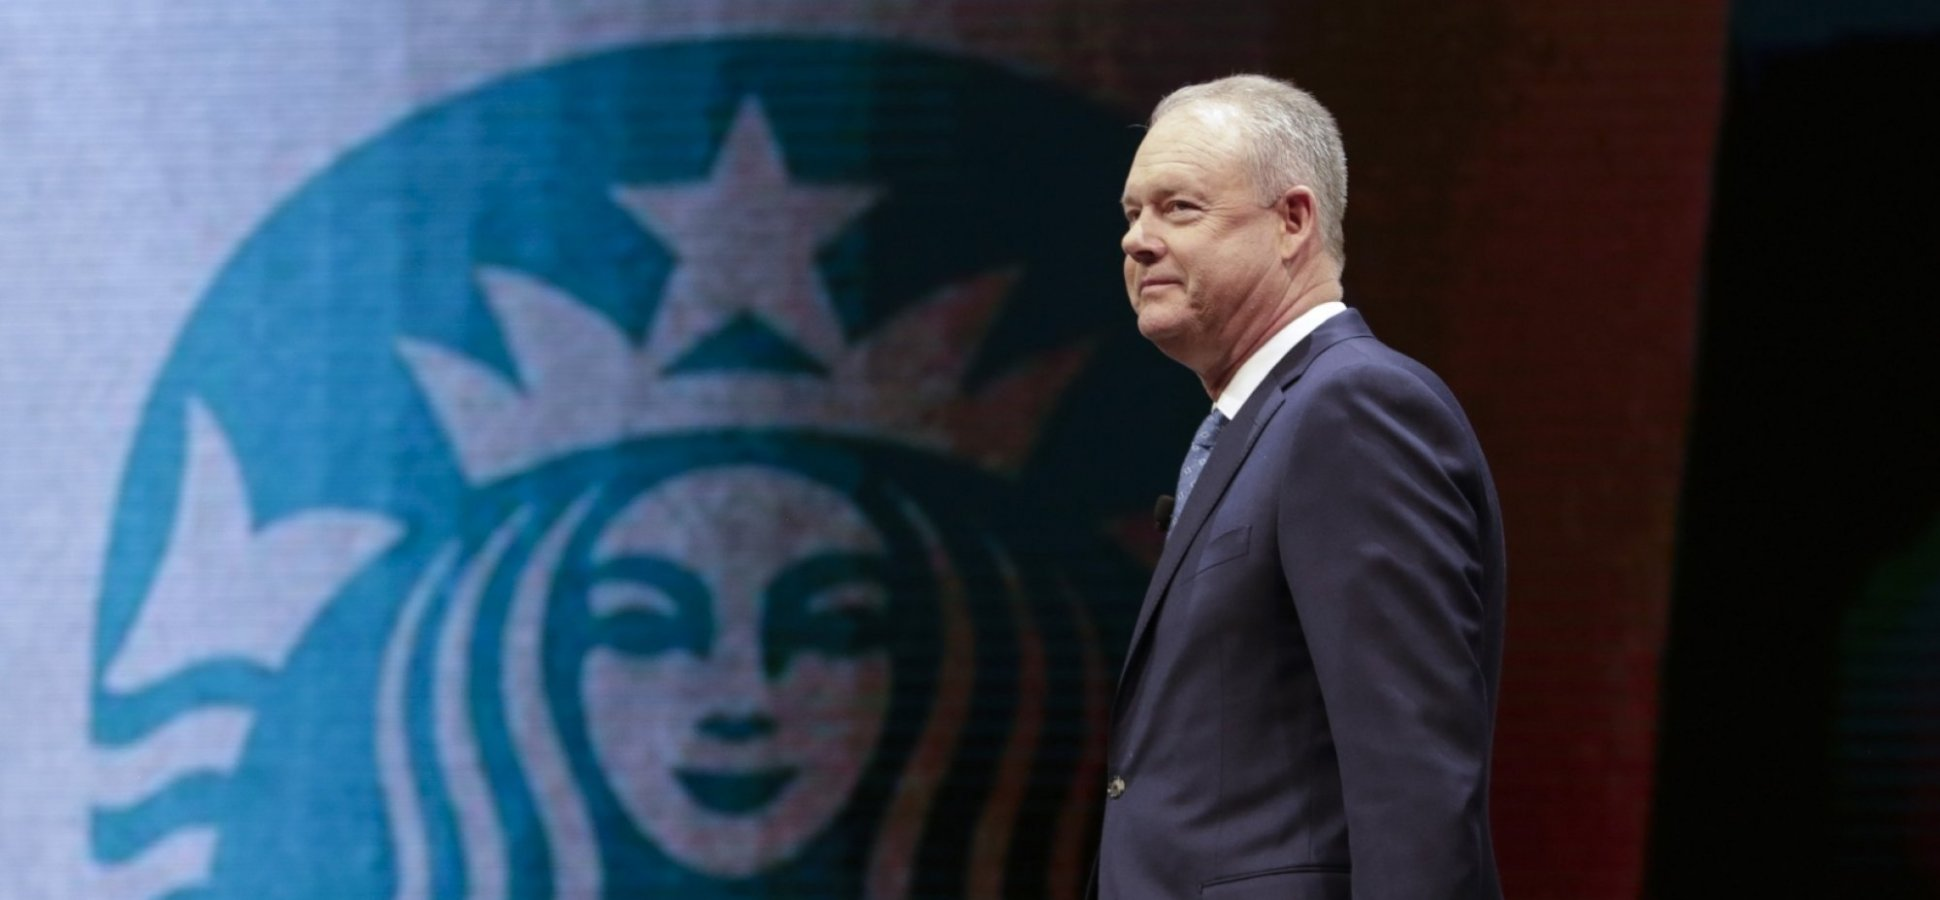 After Arrest Incident Goes Viral, Starbucks CEO Kevin Johnson Issues New Apology